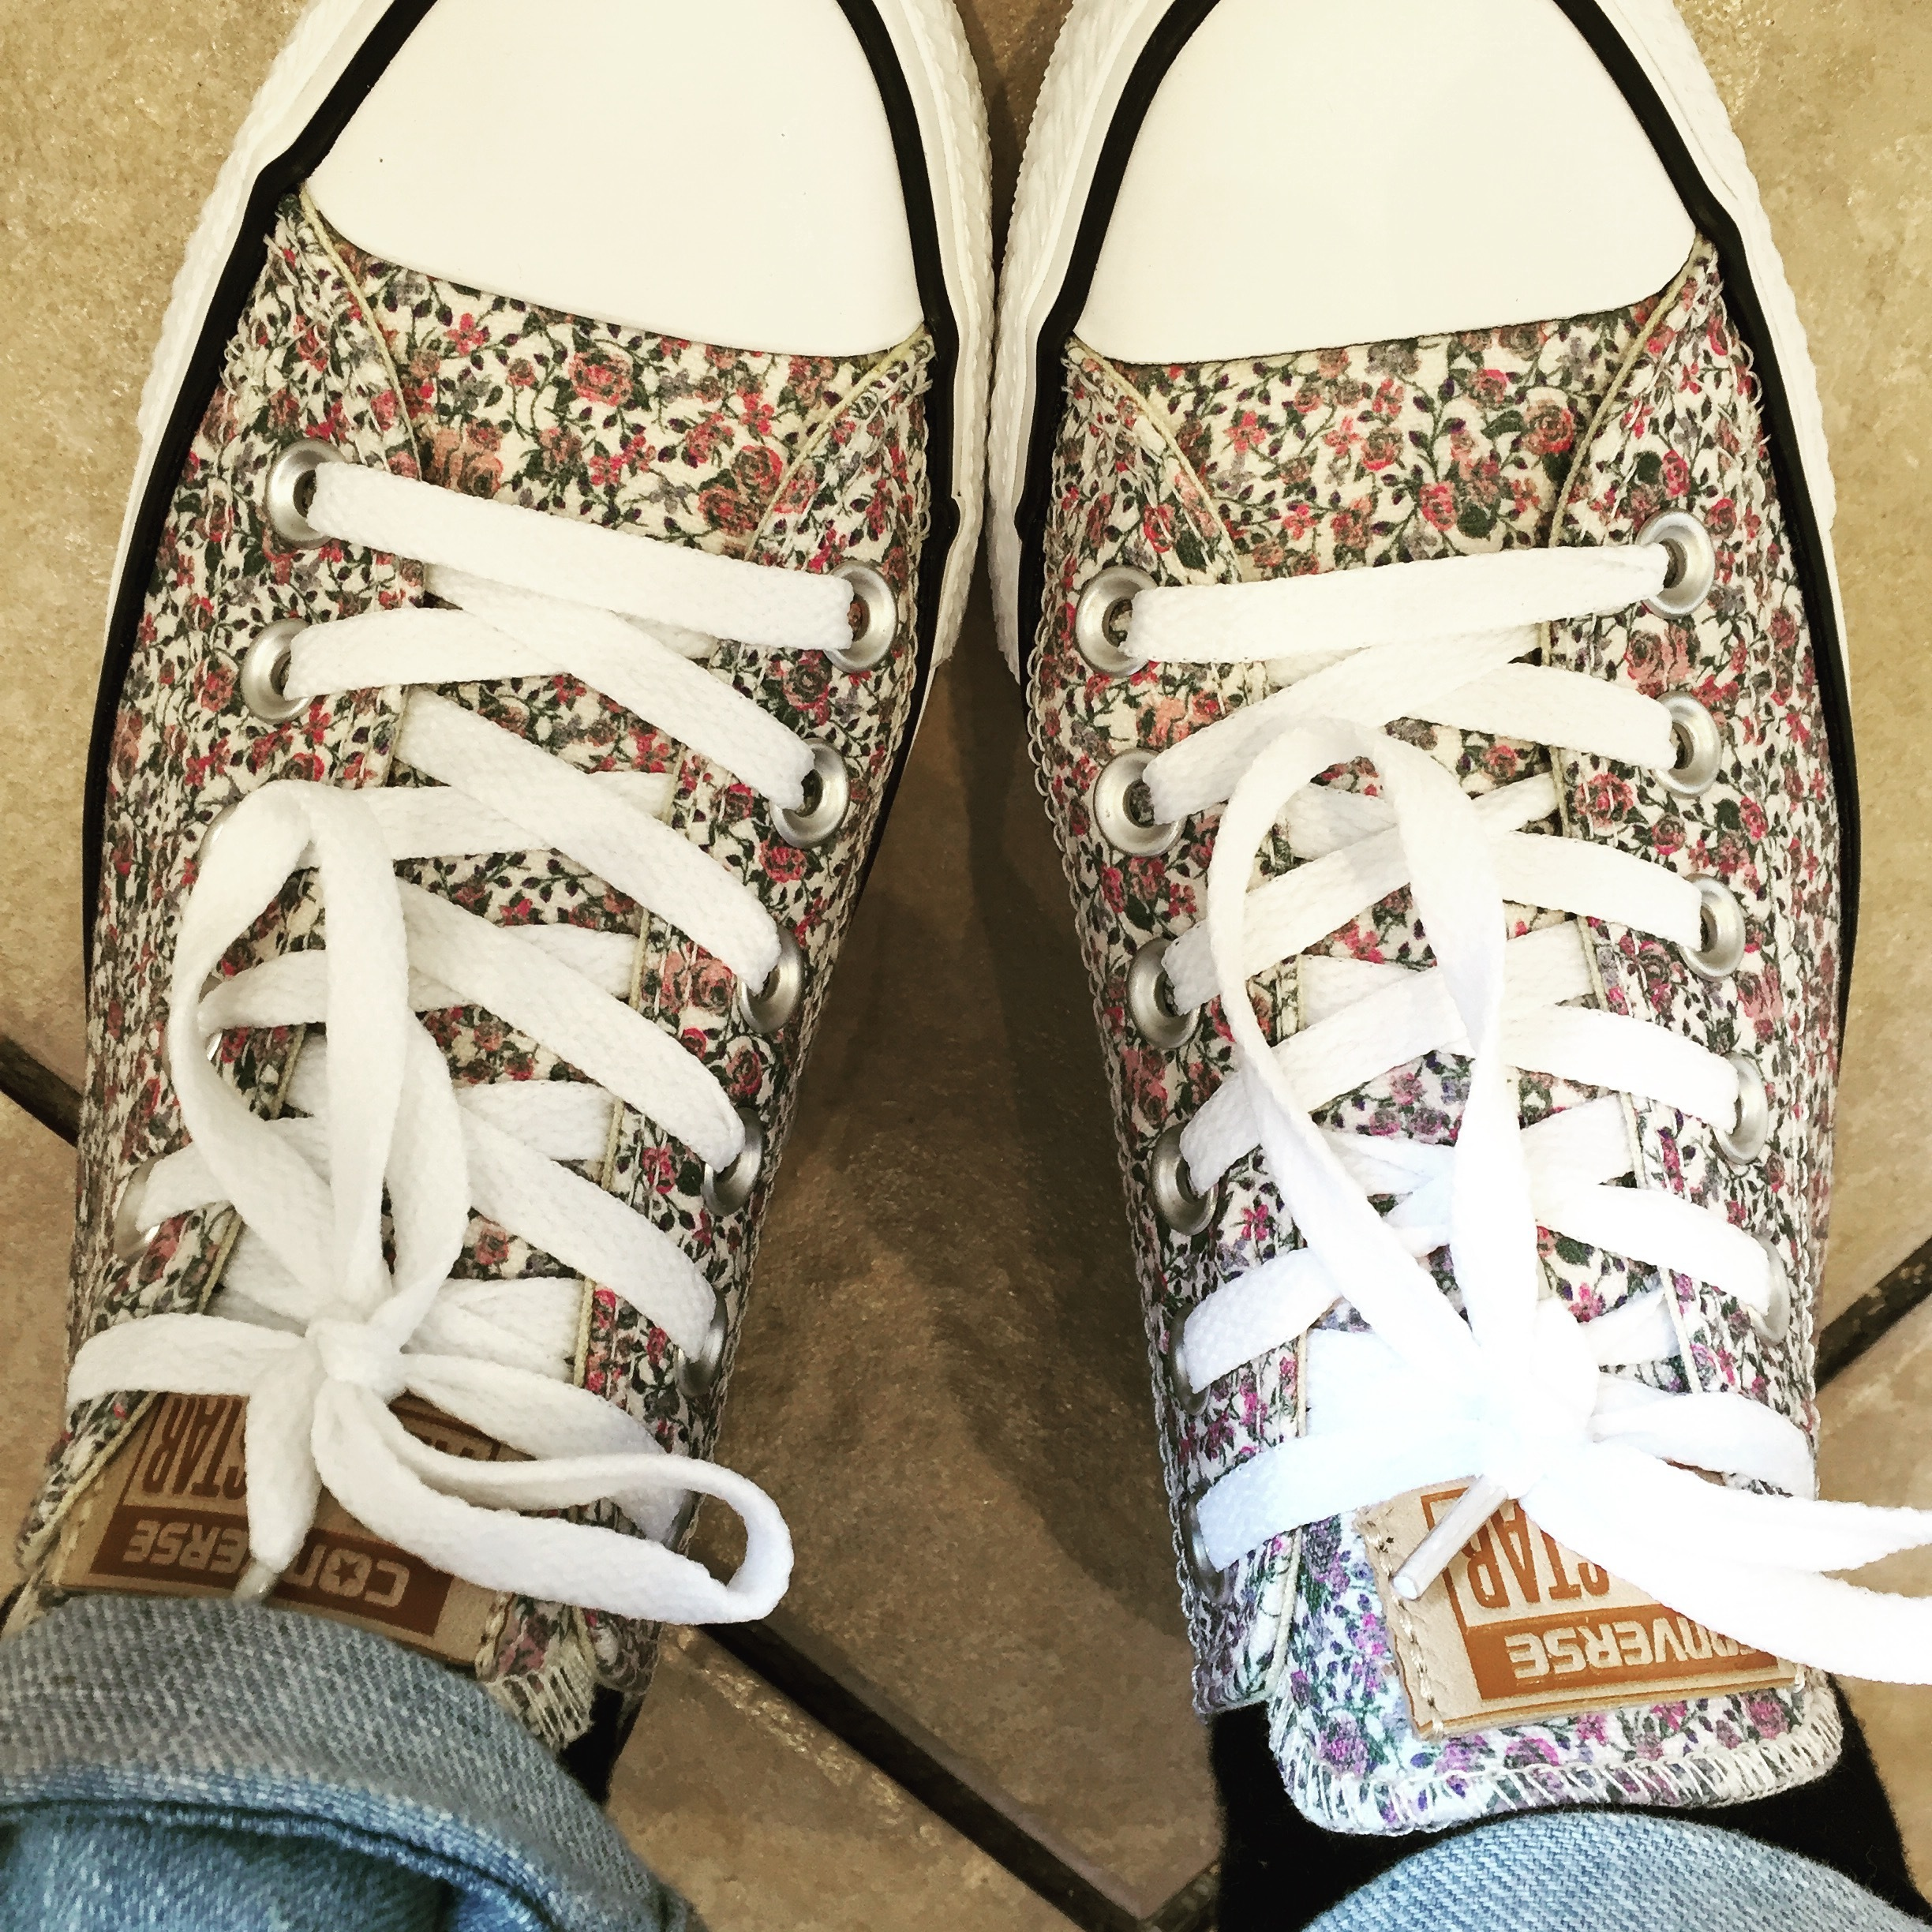 My sale treat: Tiny Rose Converse Trainers from Office